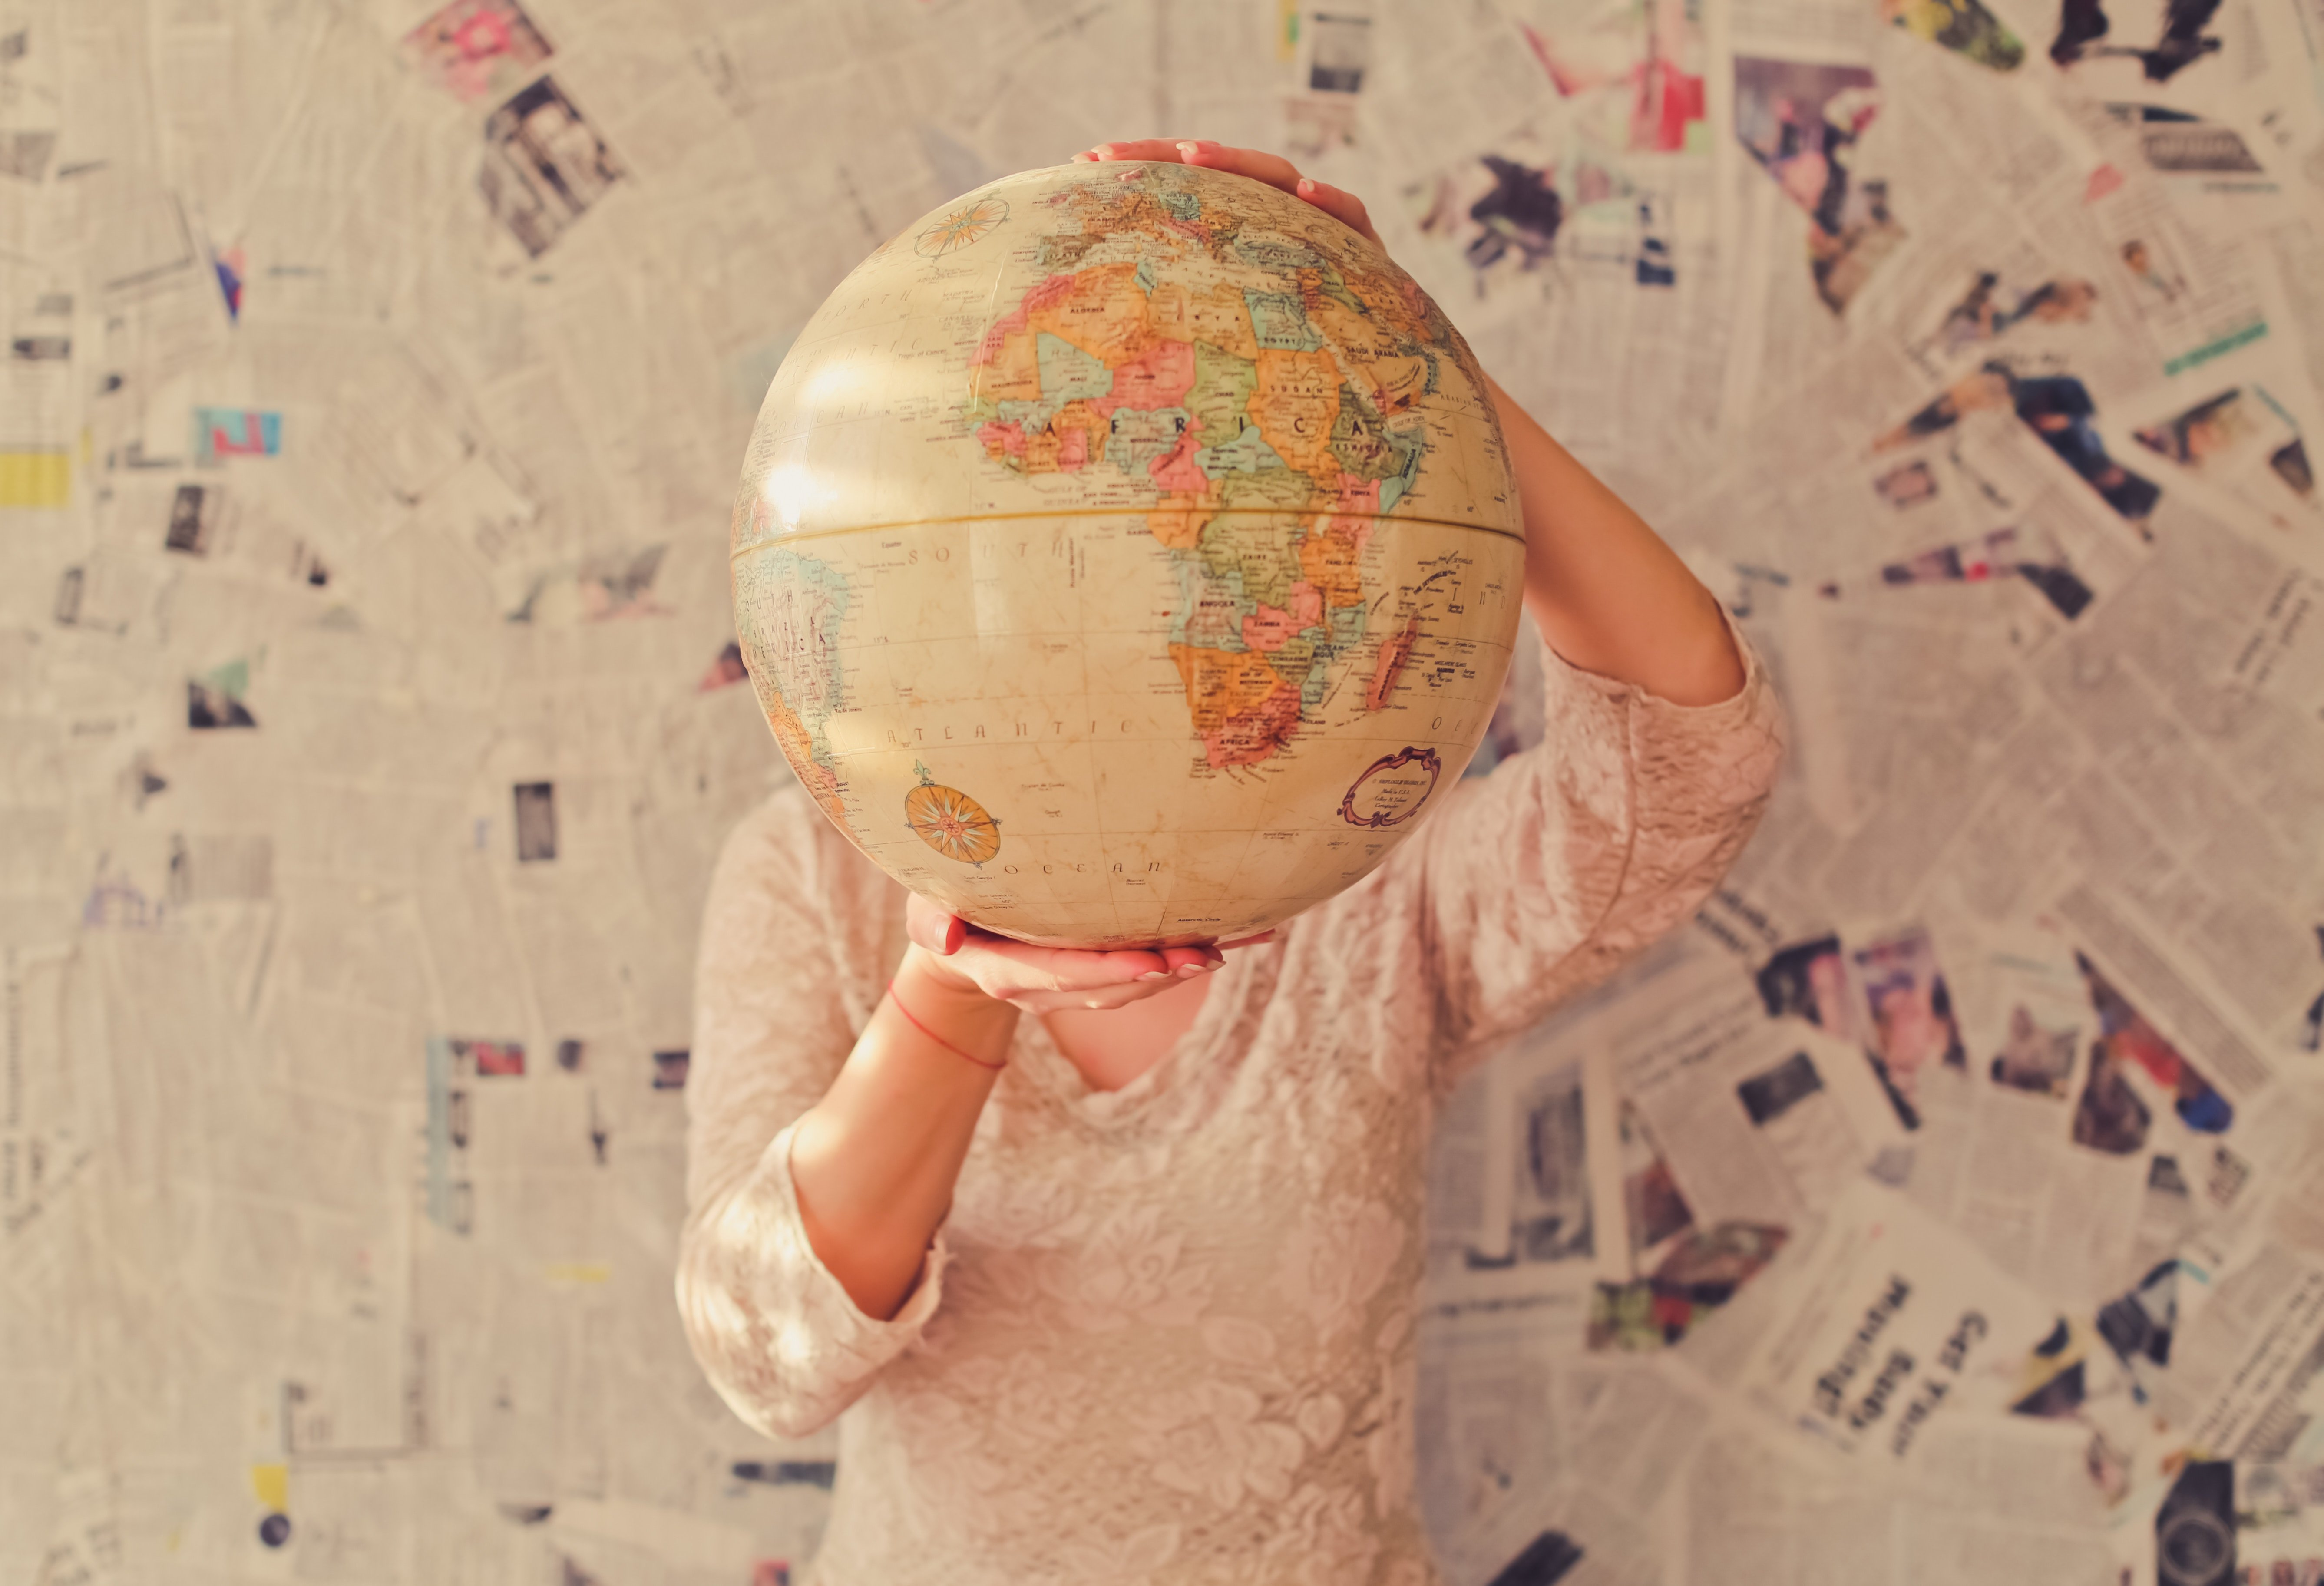 A woman holding up a globe, showing the various options of countries for teaching english abroad.